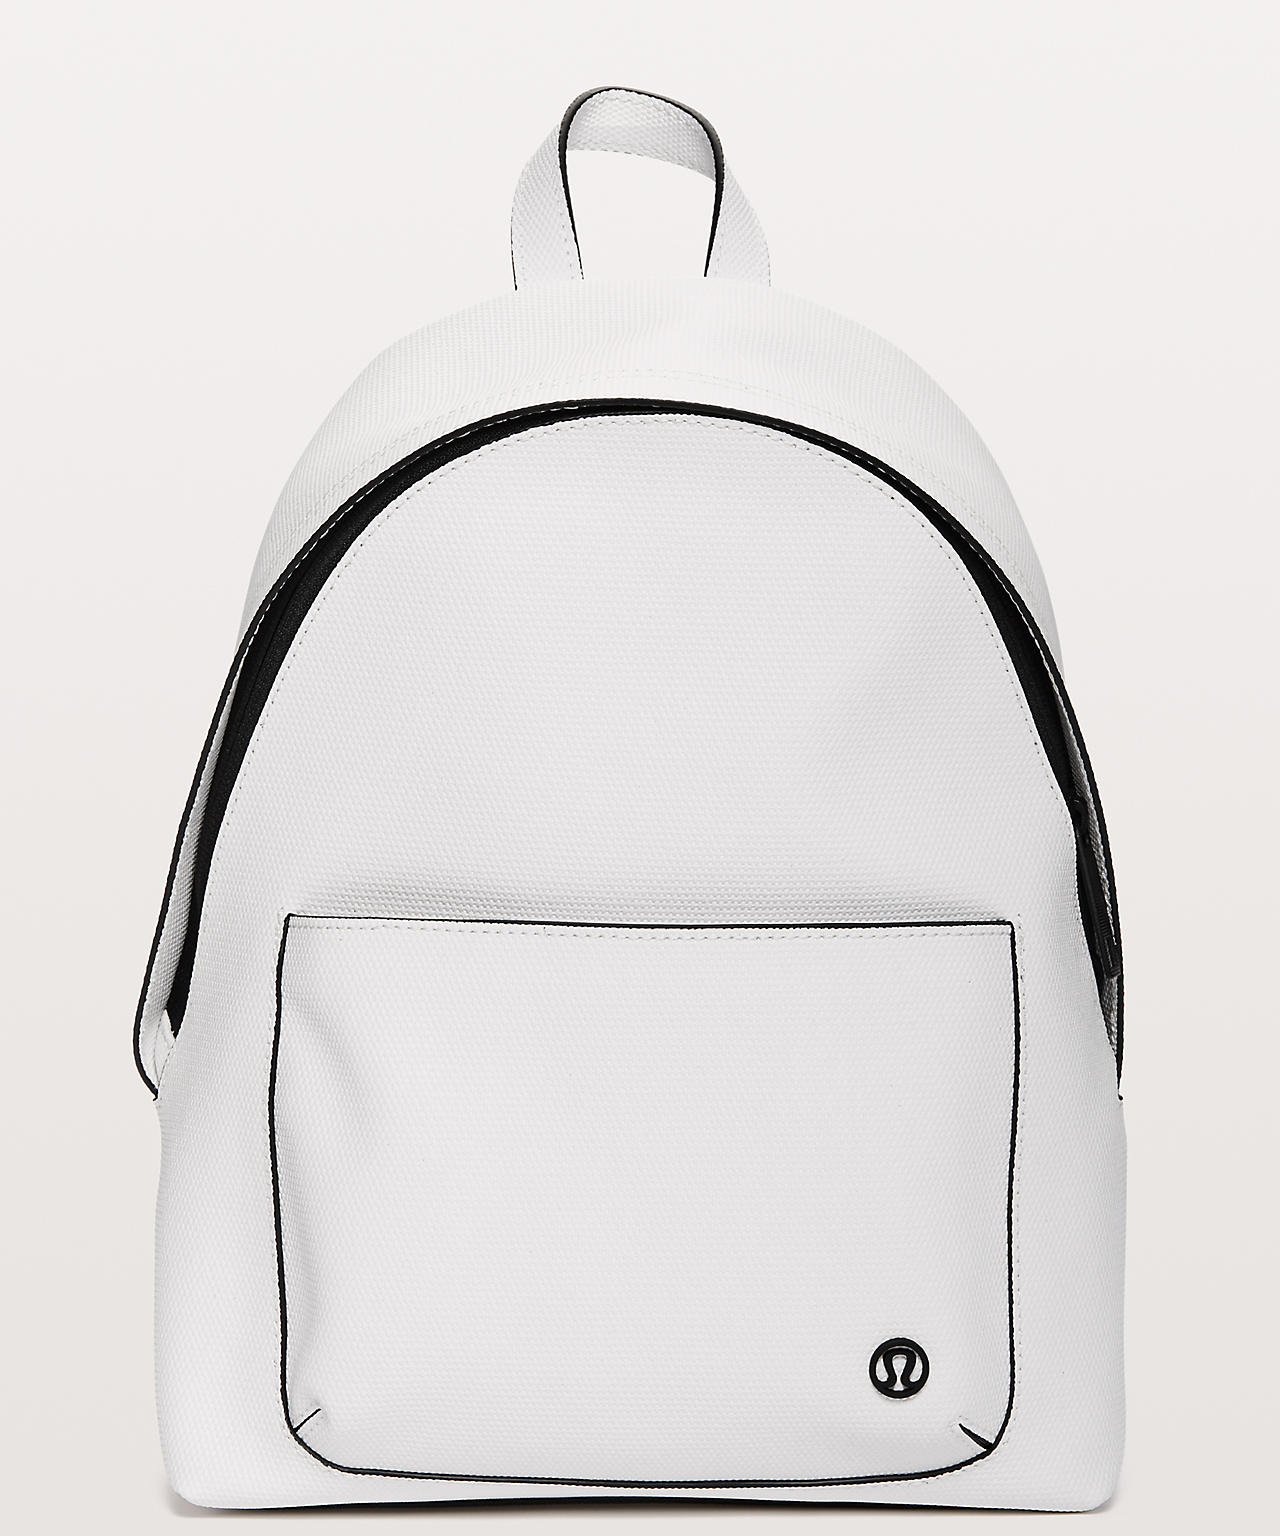 lululemon backpack.jpg